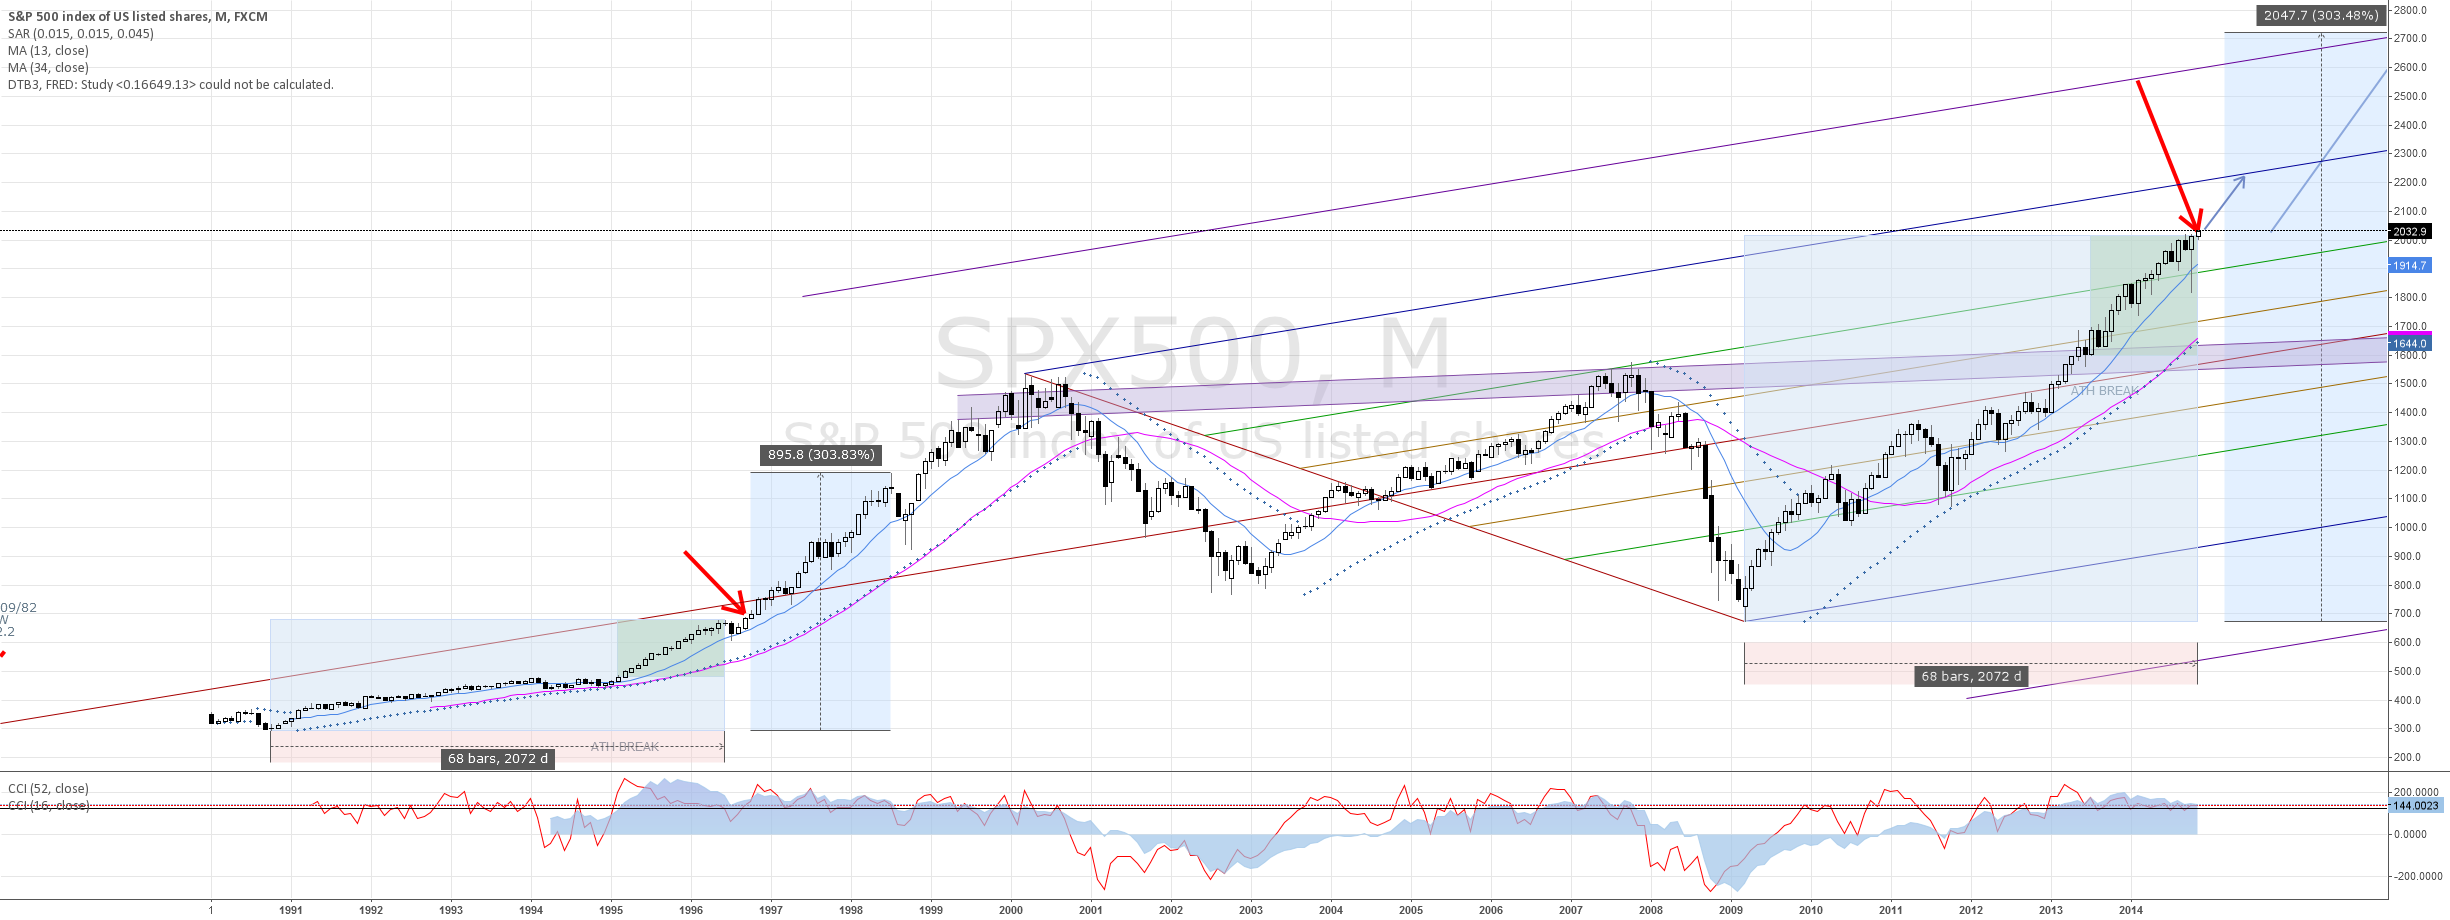 SPX - NO SELL SIGNAL IN SIGHT